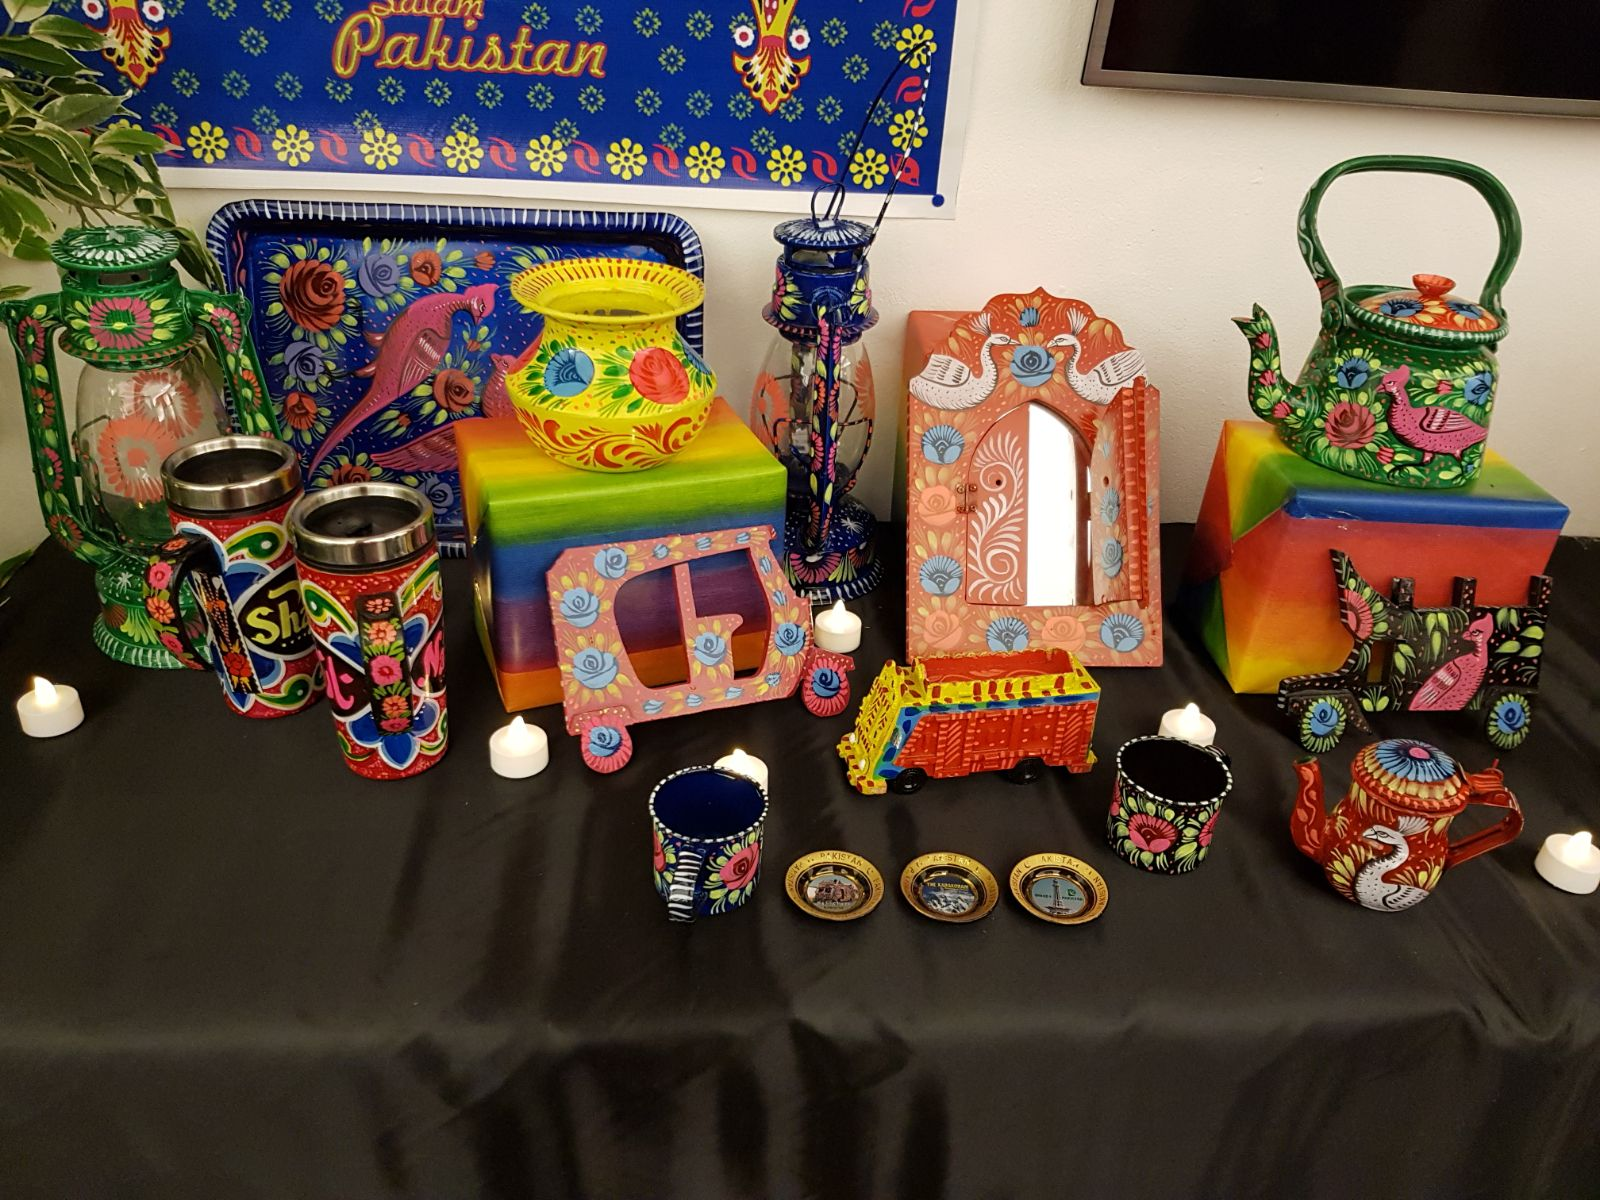 Pakistan Truck Art Exhibition 2018 in Stockholm, Sweden